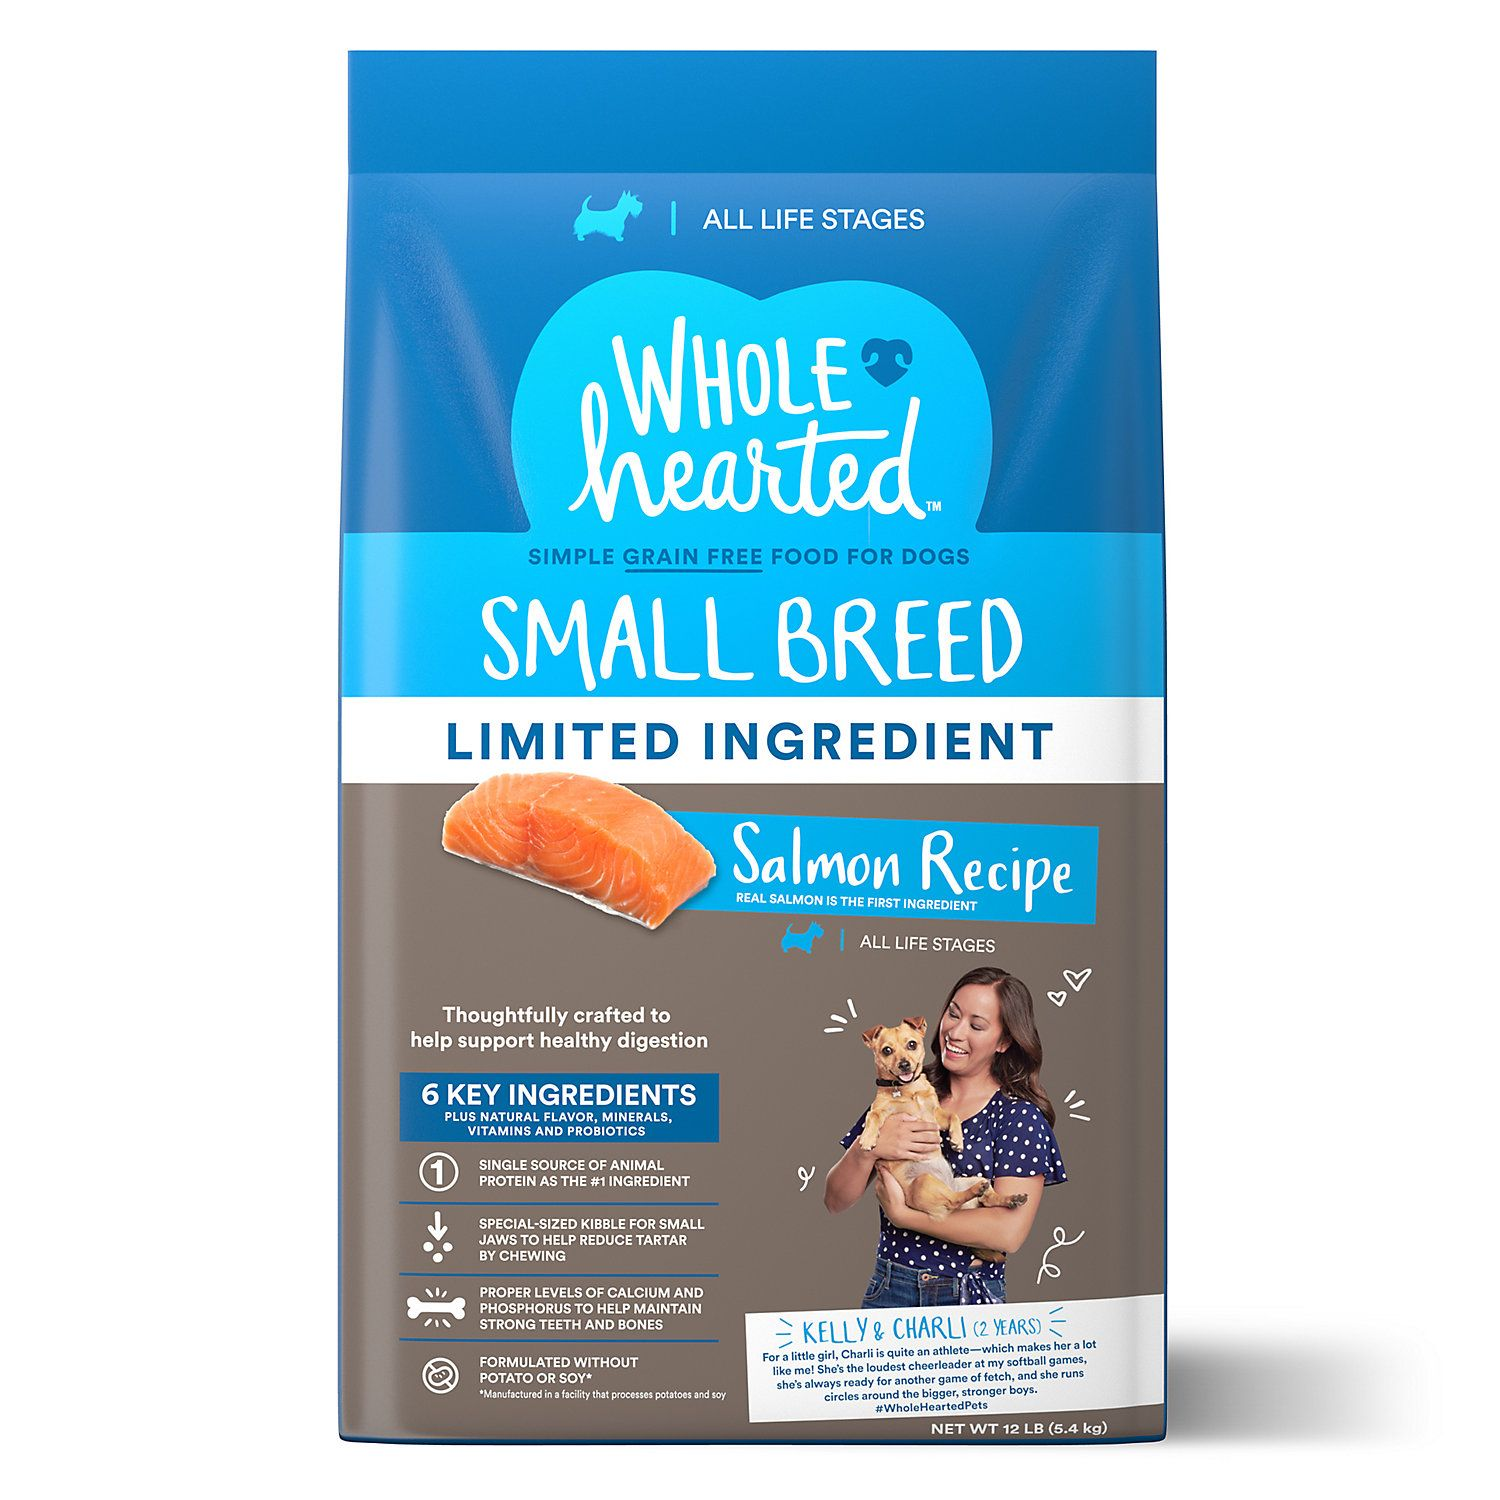 Wholehearted Grain Free Limited Ingredient Small Breed Salmon